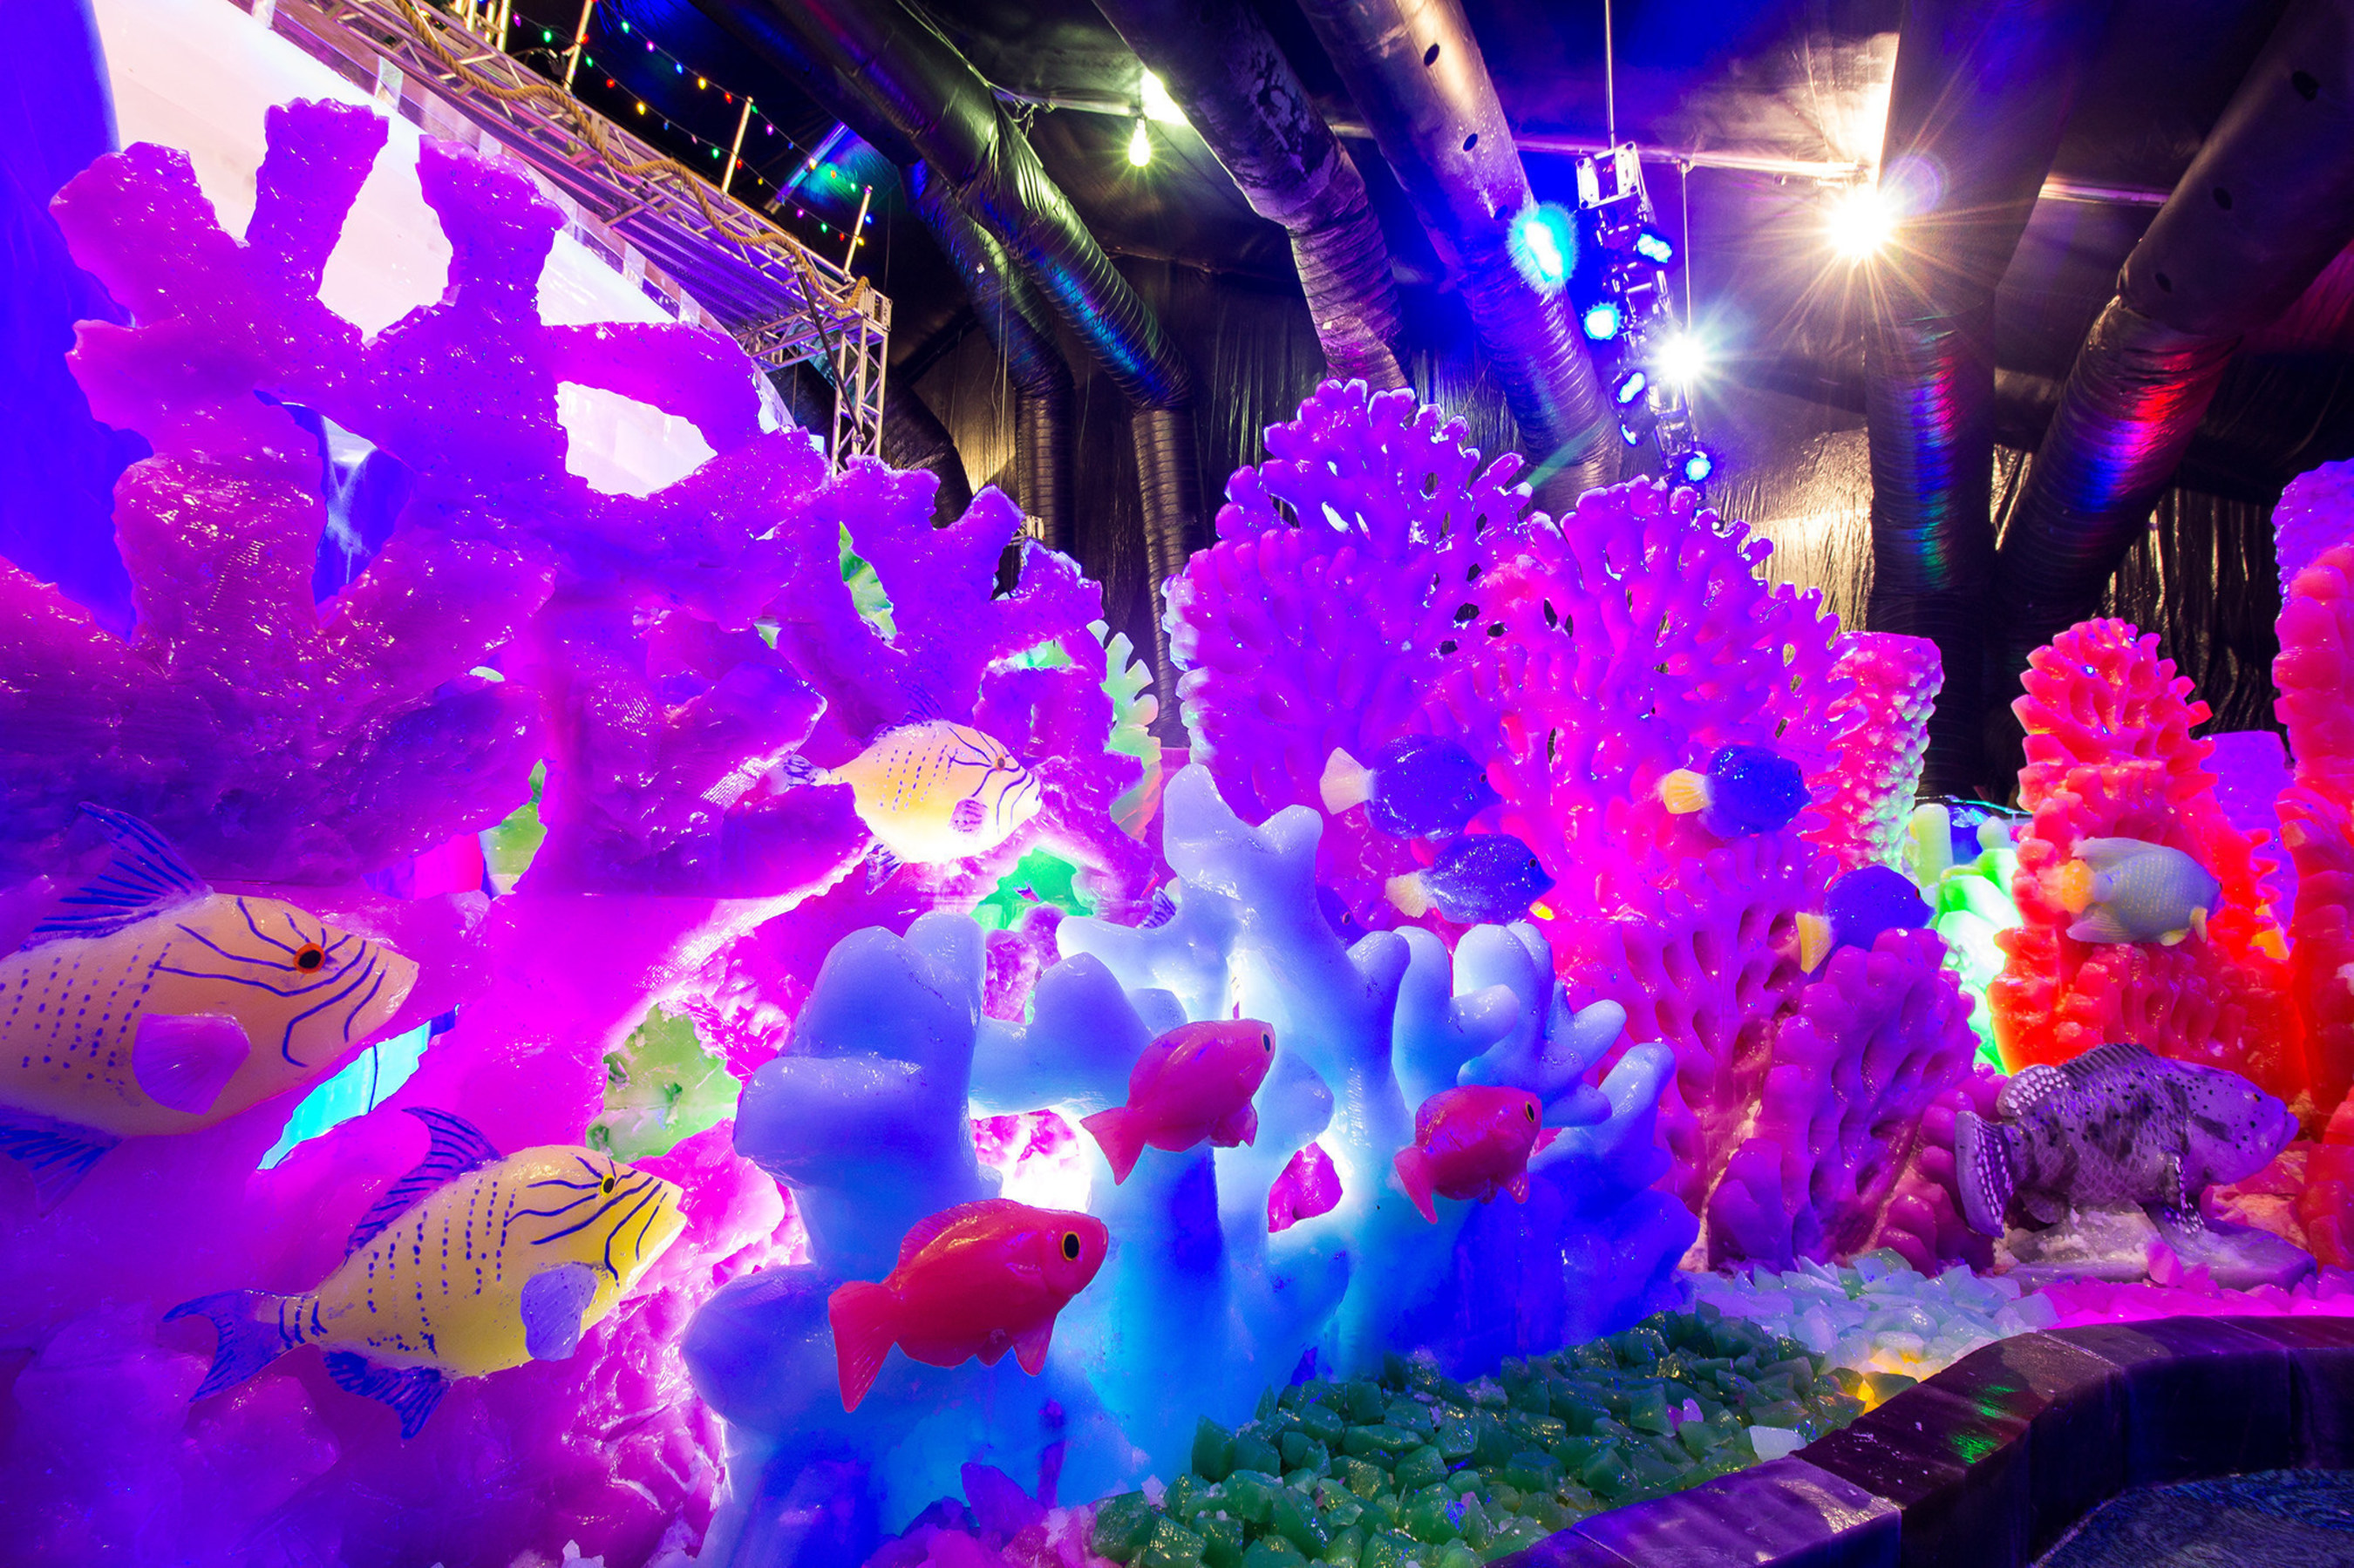 Moody Gardens offers visitors a new theme with its ICE LAND: Ice Sculptures, A Caribbean Christmas when it opens Saturday, November 12.